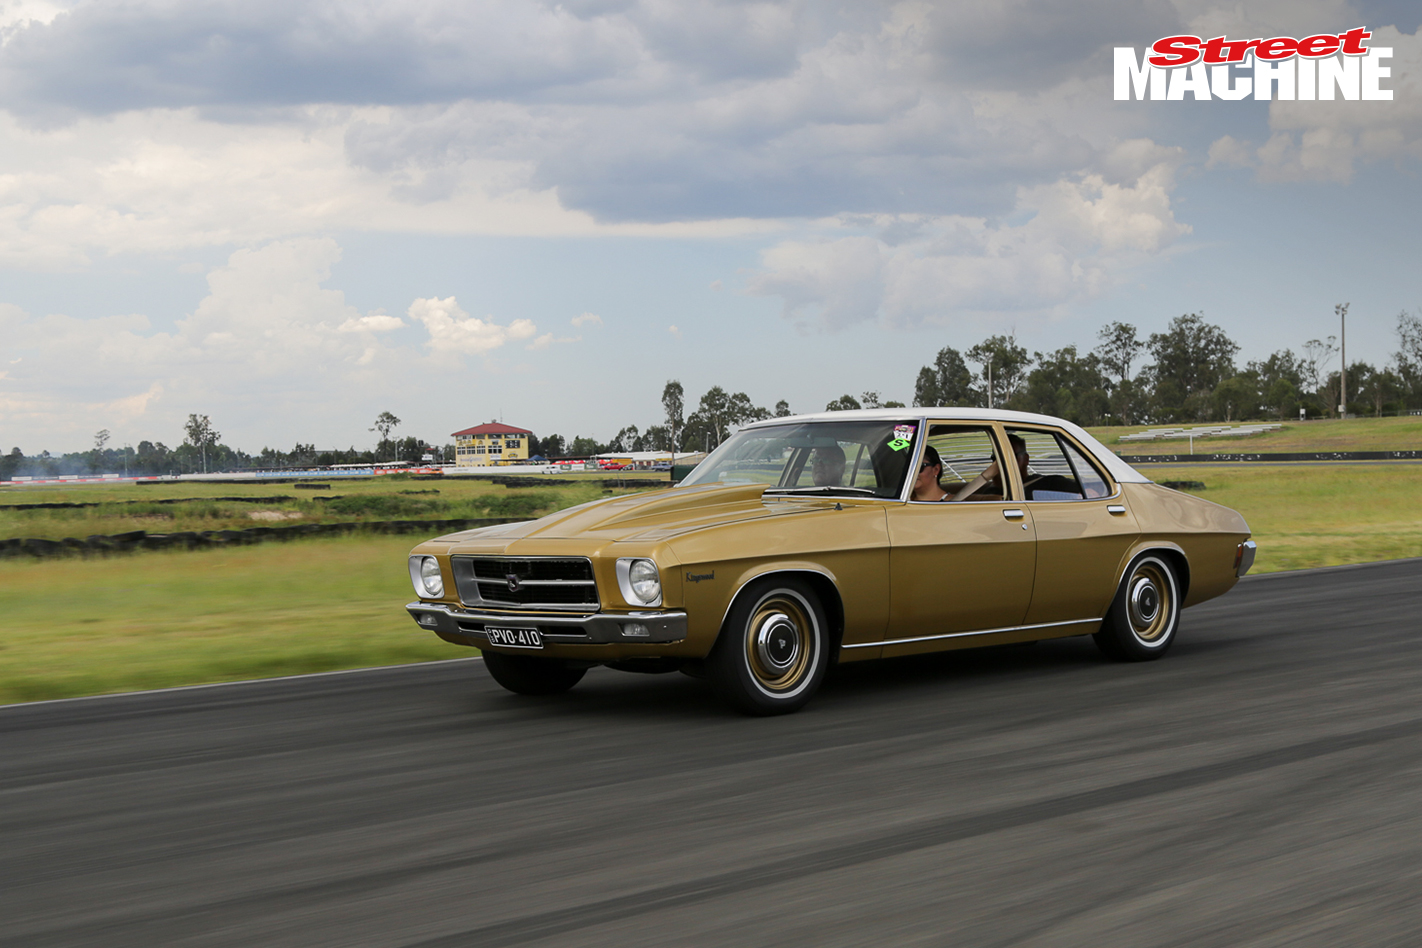 HQ Holden Powercruise 8633 Nw